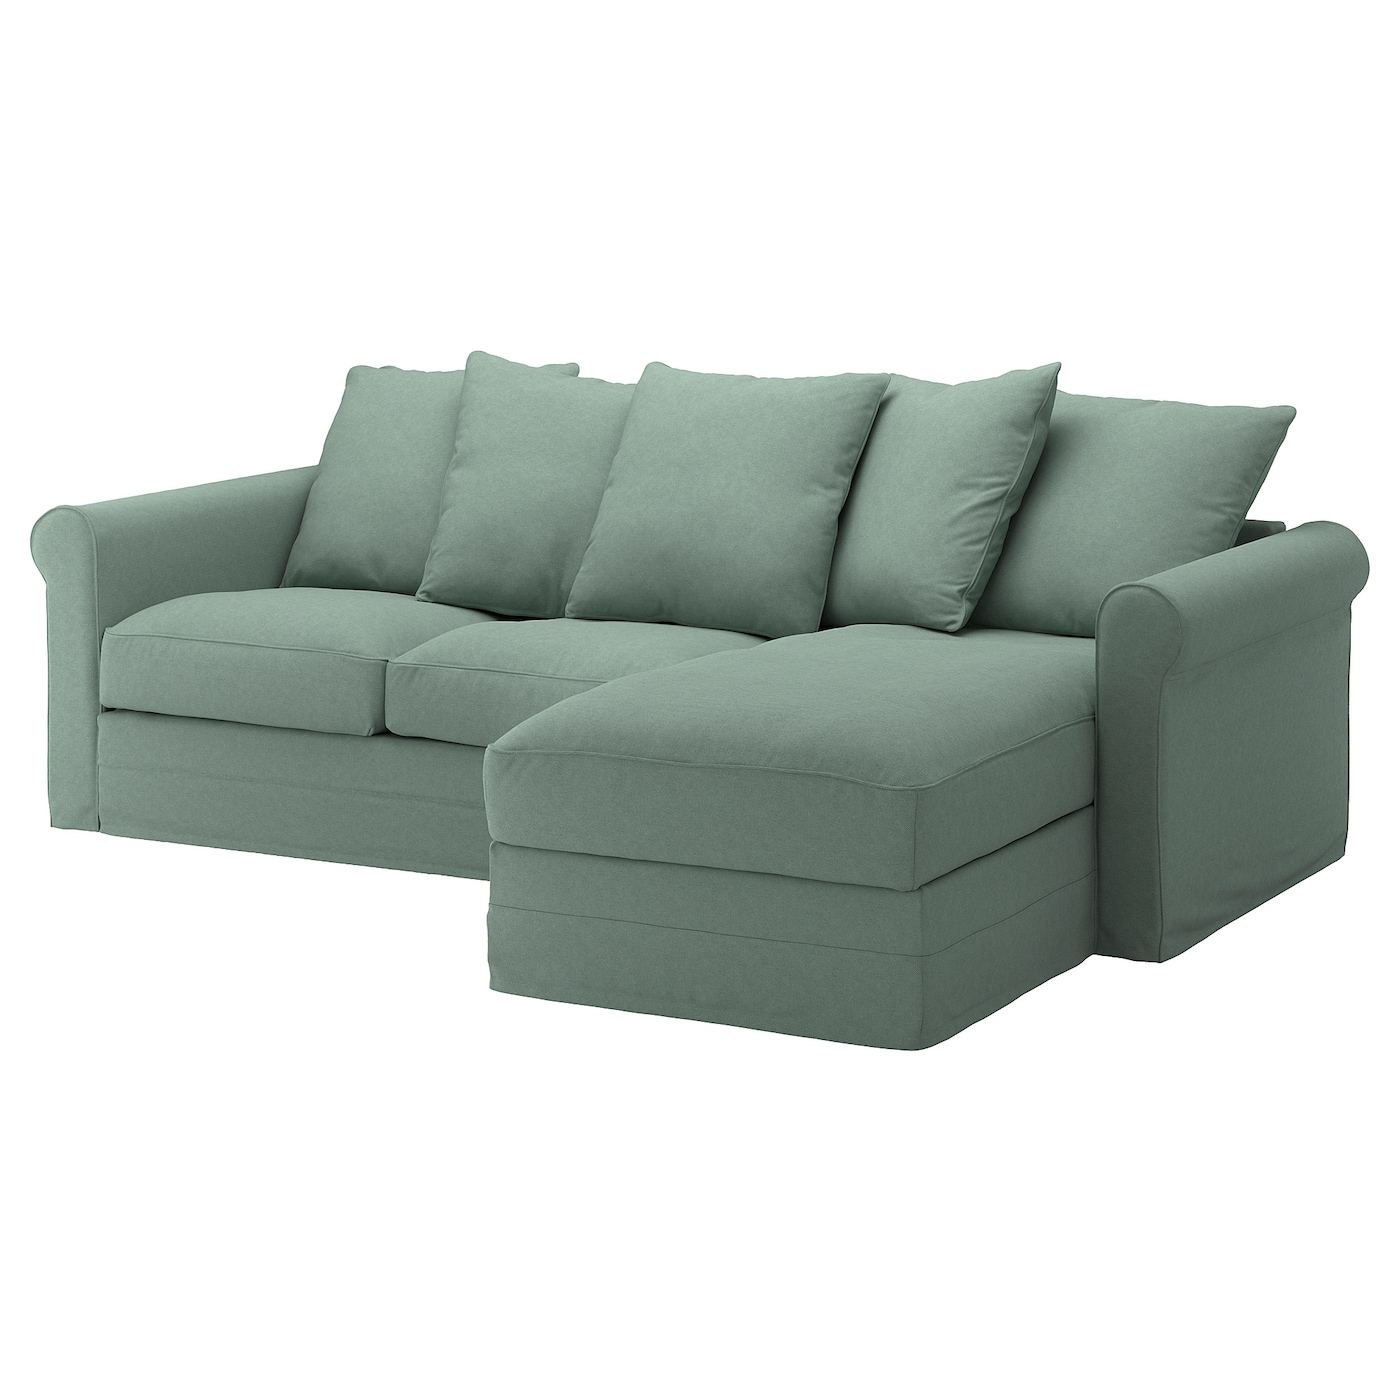 IKEA GRÖNLID 3-seat sofa The cover is easy to keep clean since it is removable and machine washable.